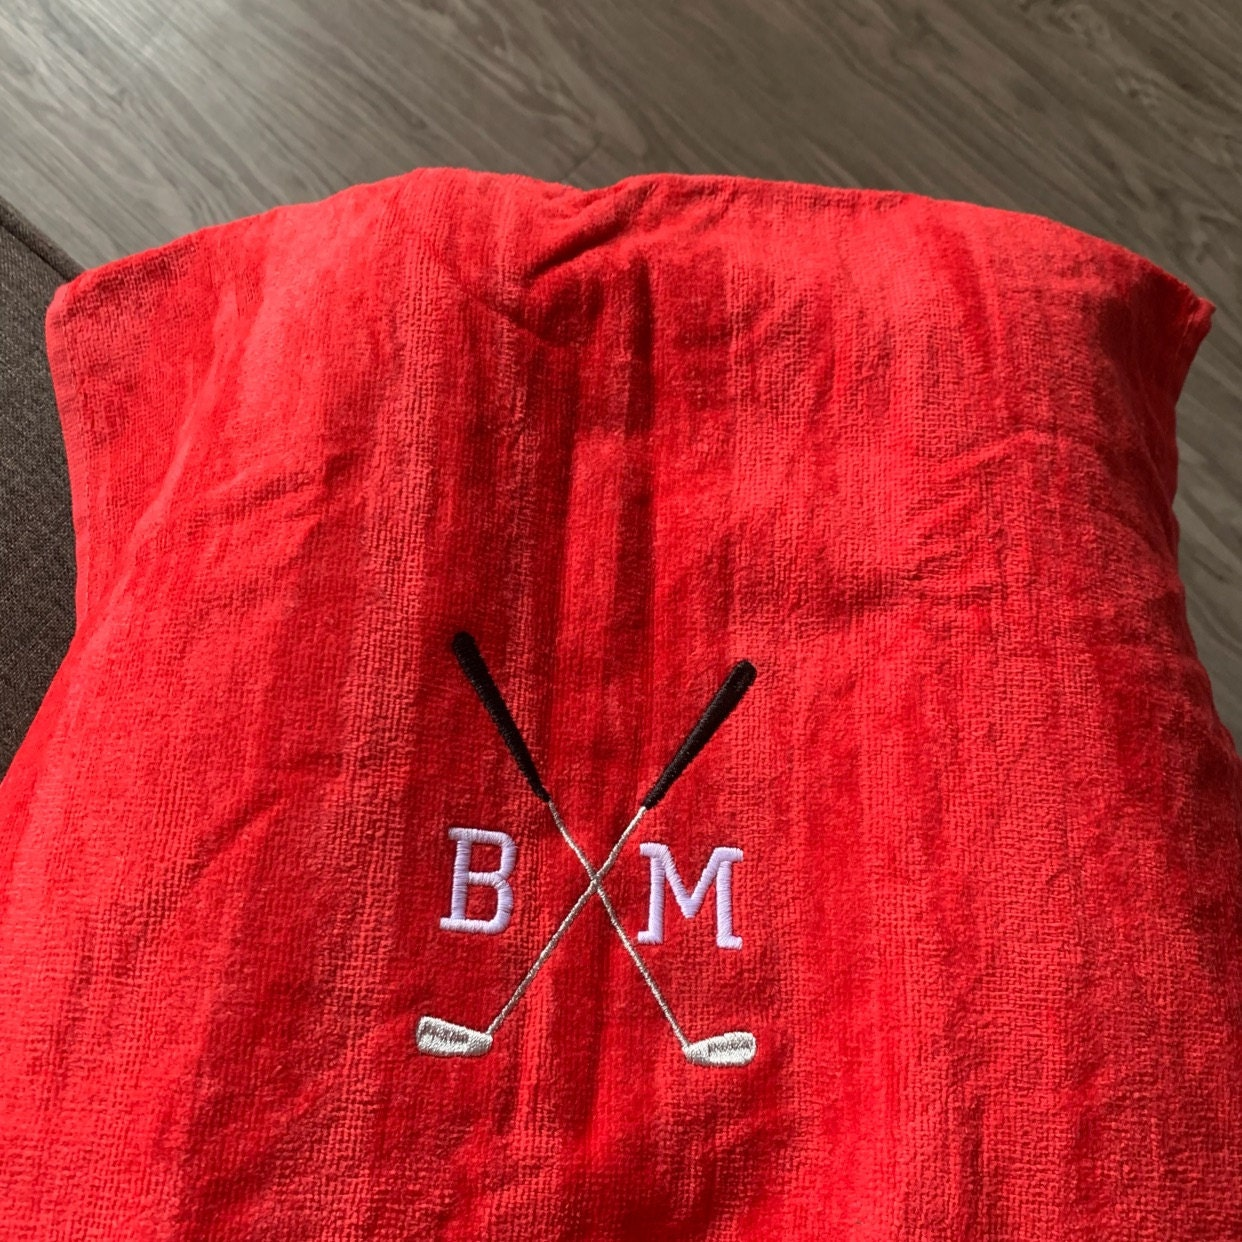 Embroidered Golf Towel, Personalized Golf towel, golf gift